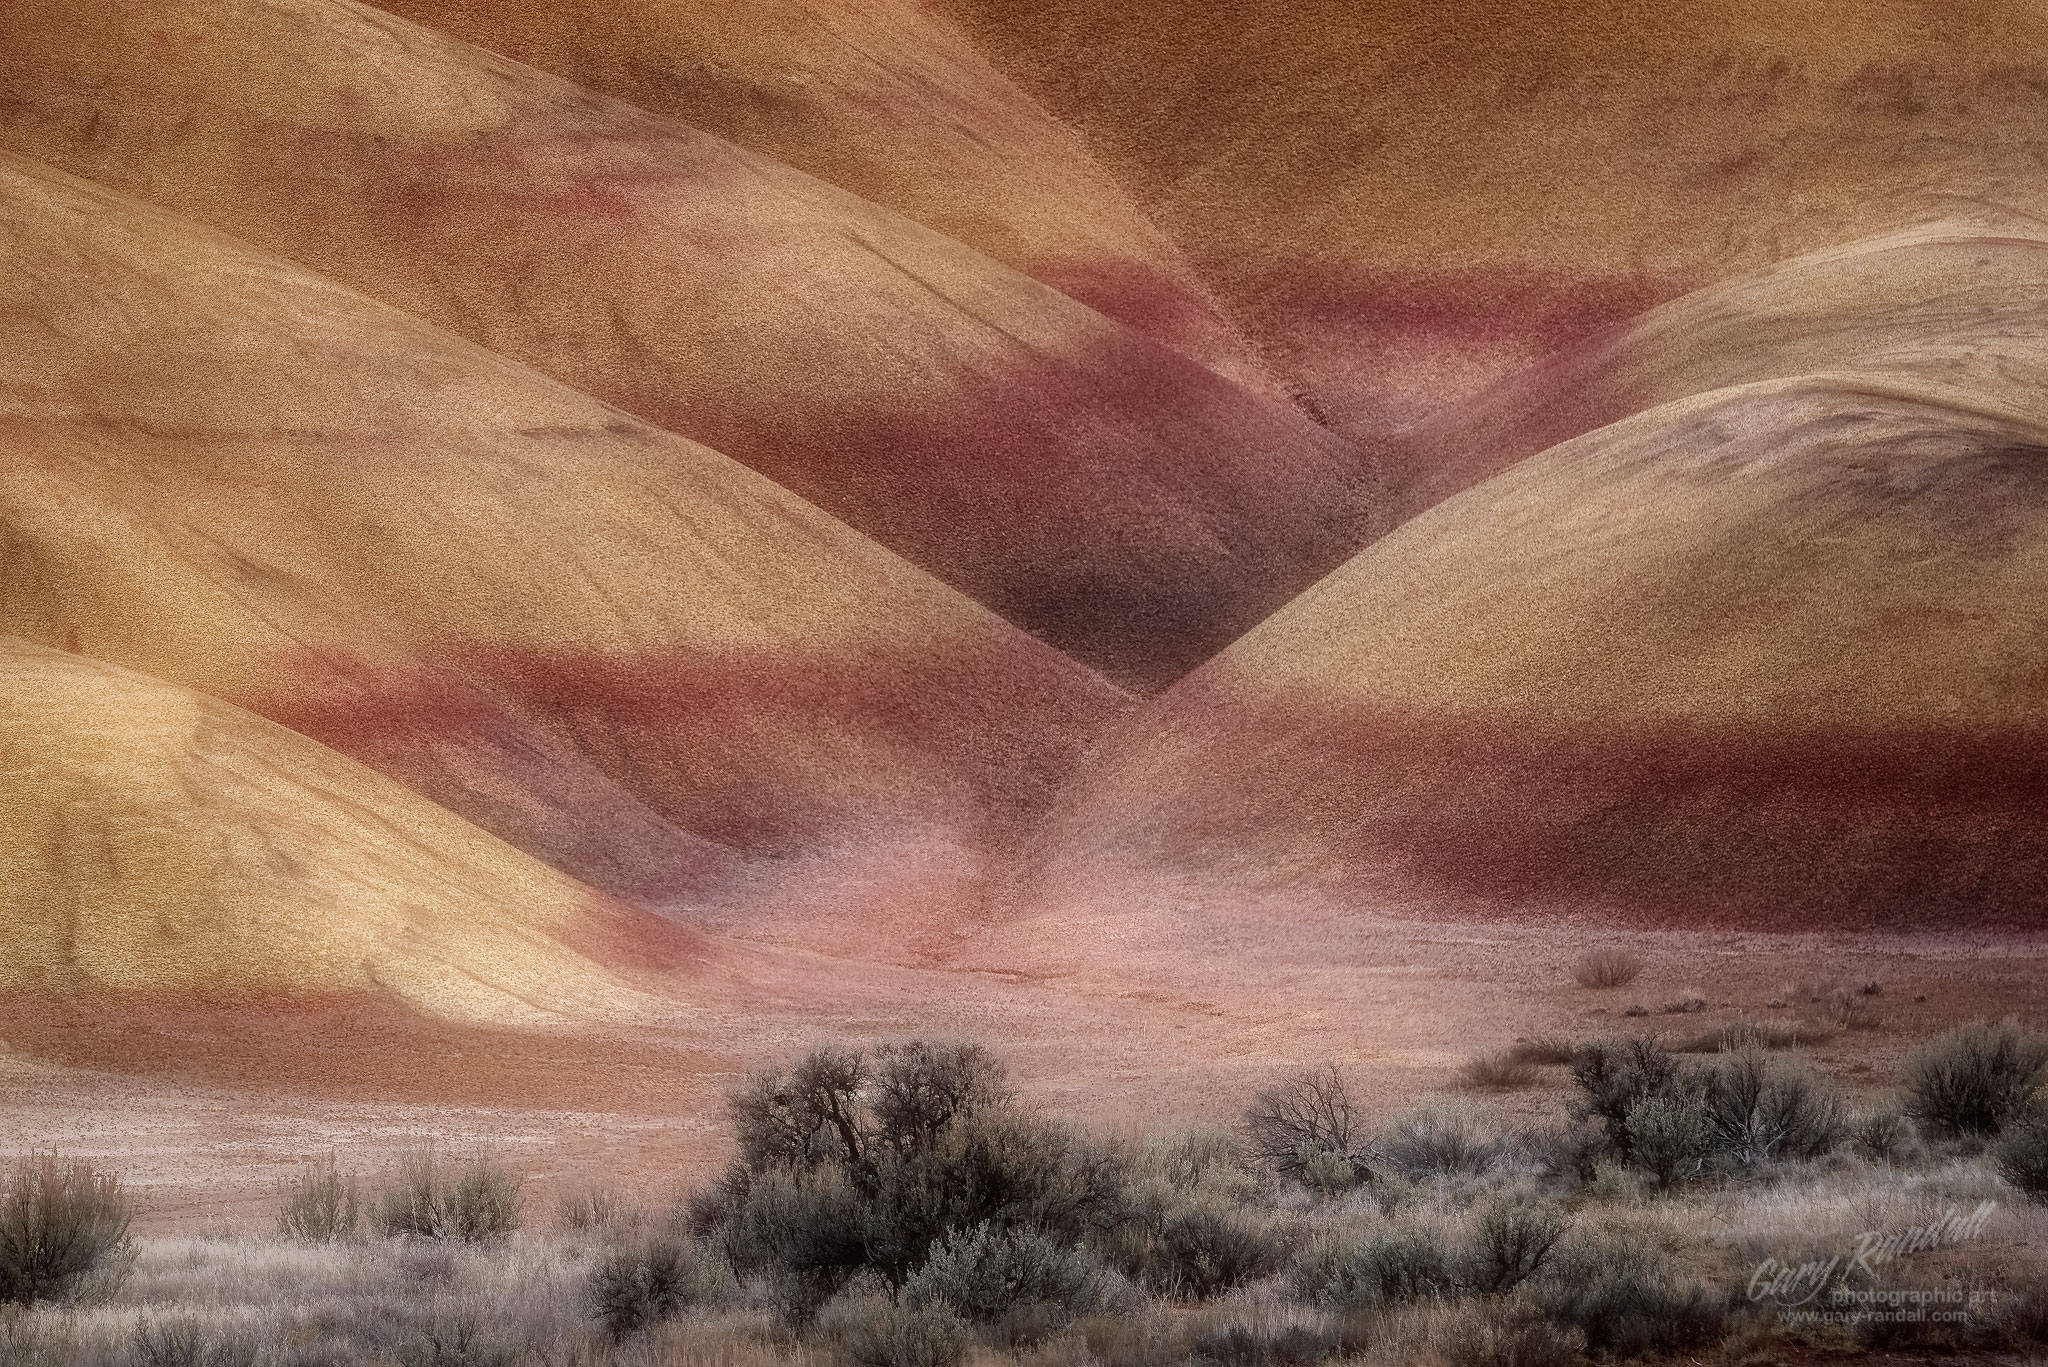 Critique and Competition in Photography – The Painted Hills in Central Oregon.